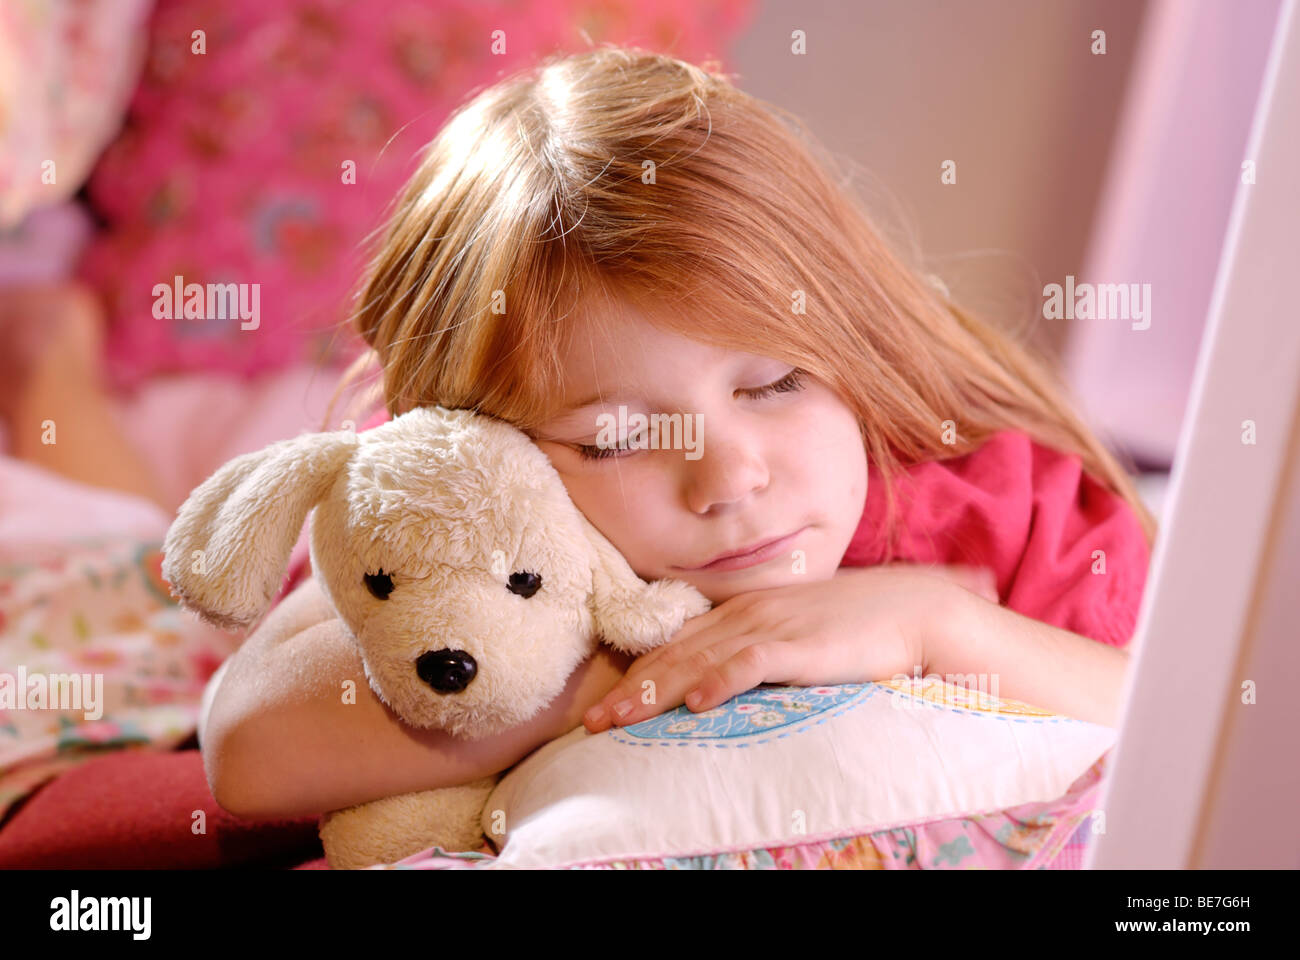 Little girl sleeping with a stuffed toy dog - Stock Image